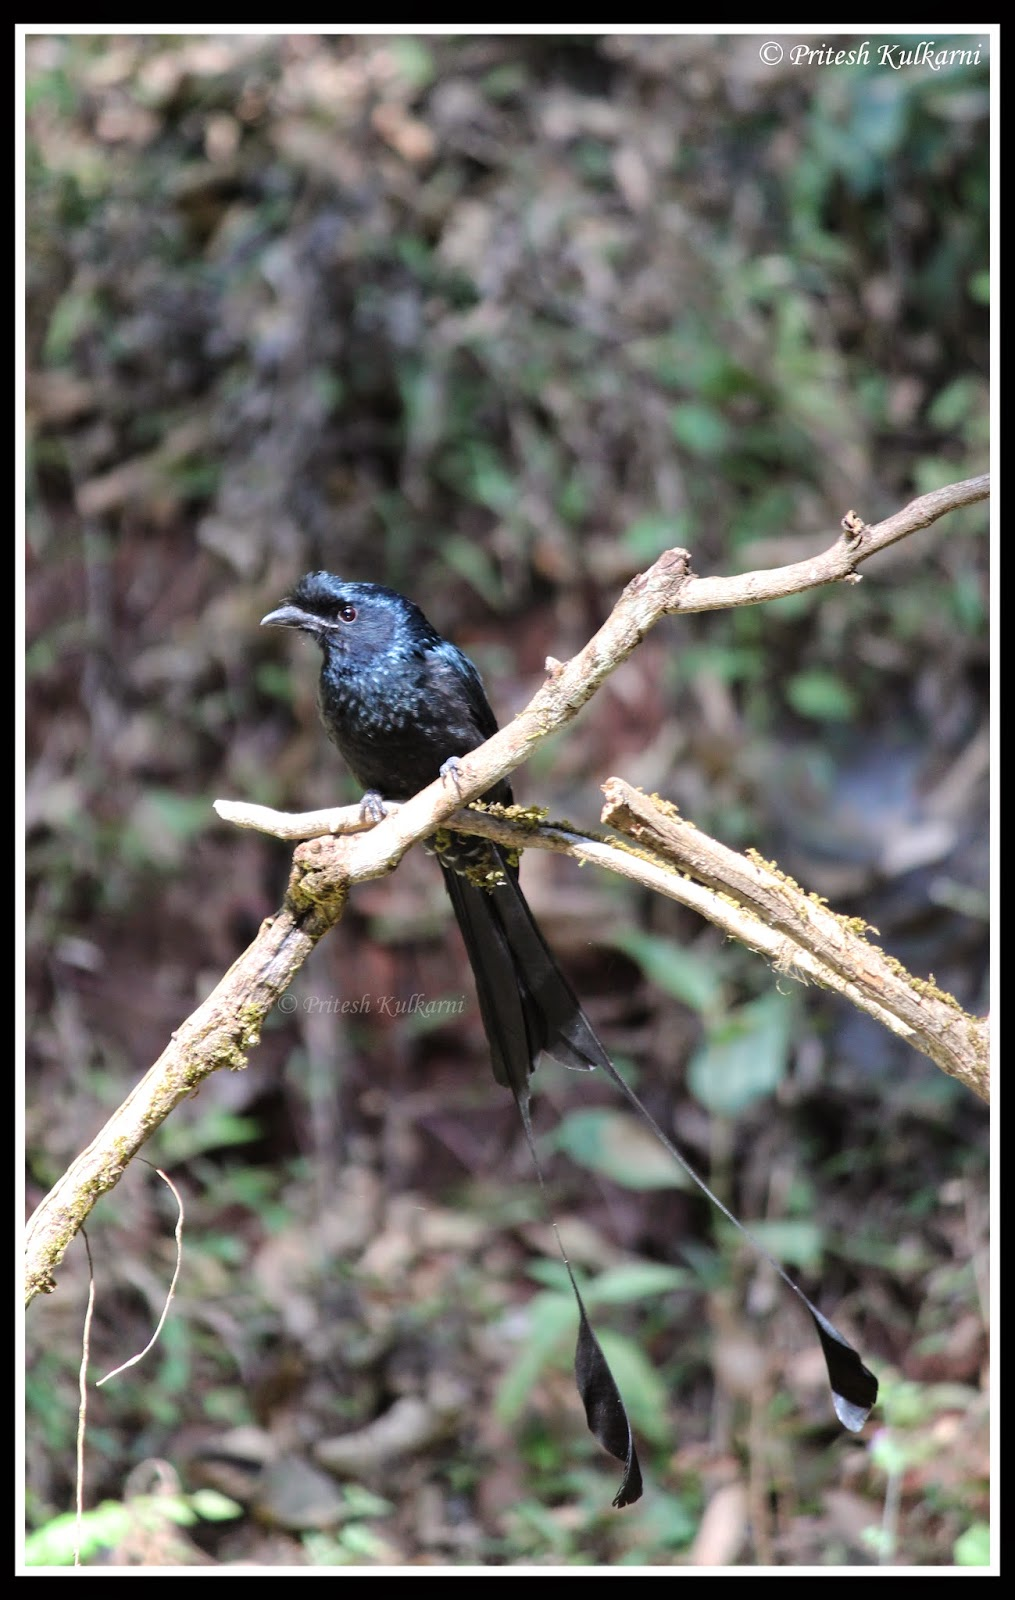 Greater racket-tailed drongo at Old Magazine House